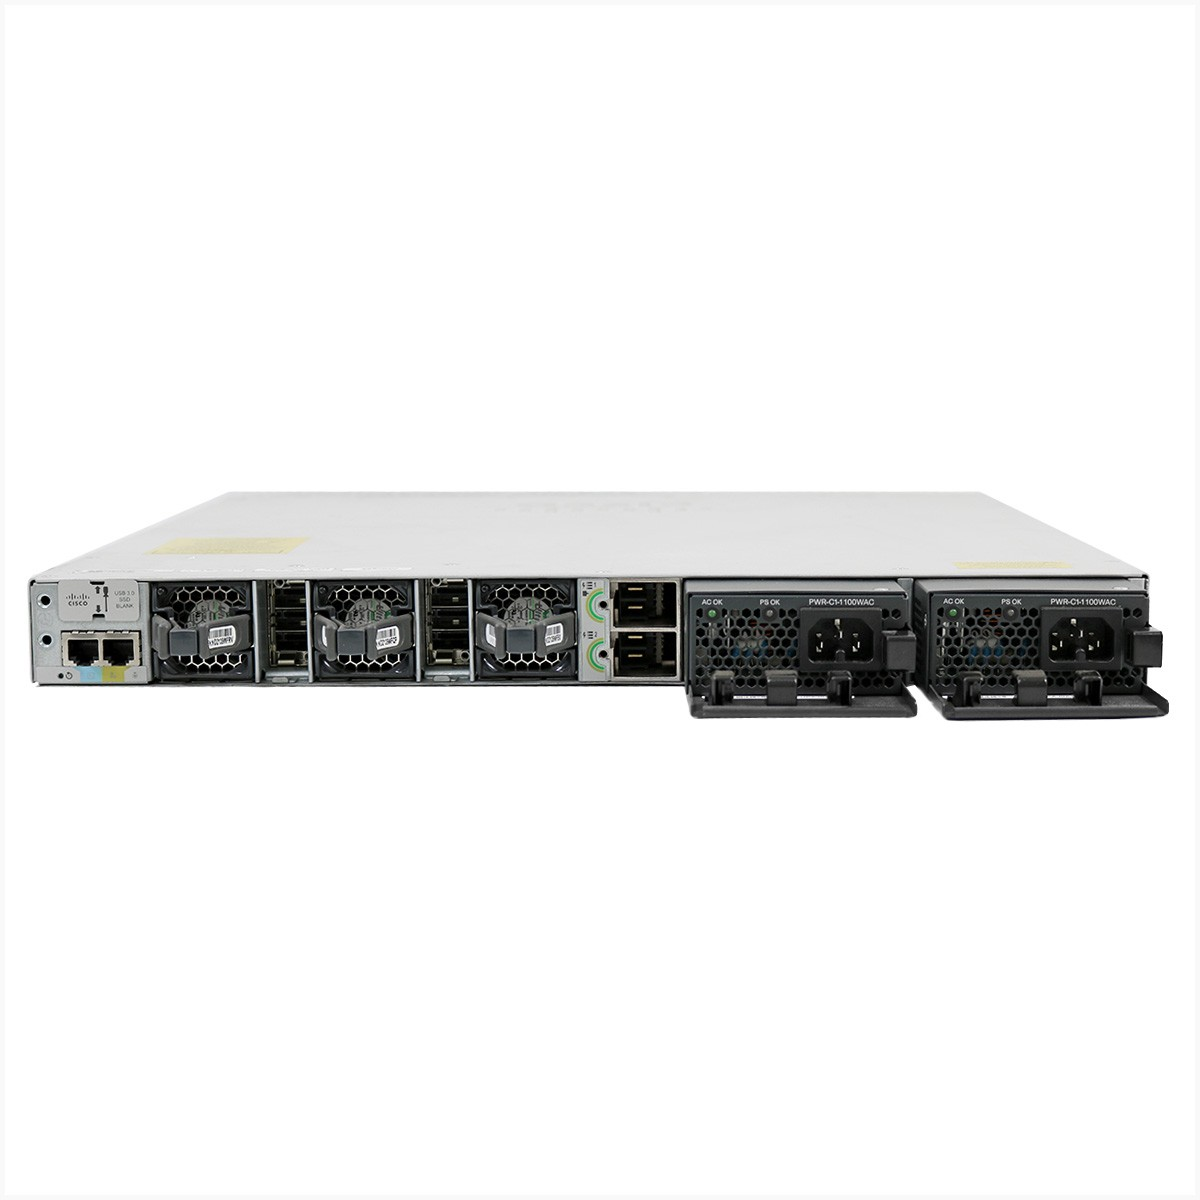 Switch cisco  c9300-24u-a 24 portas gigabit - usado